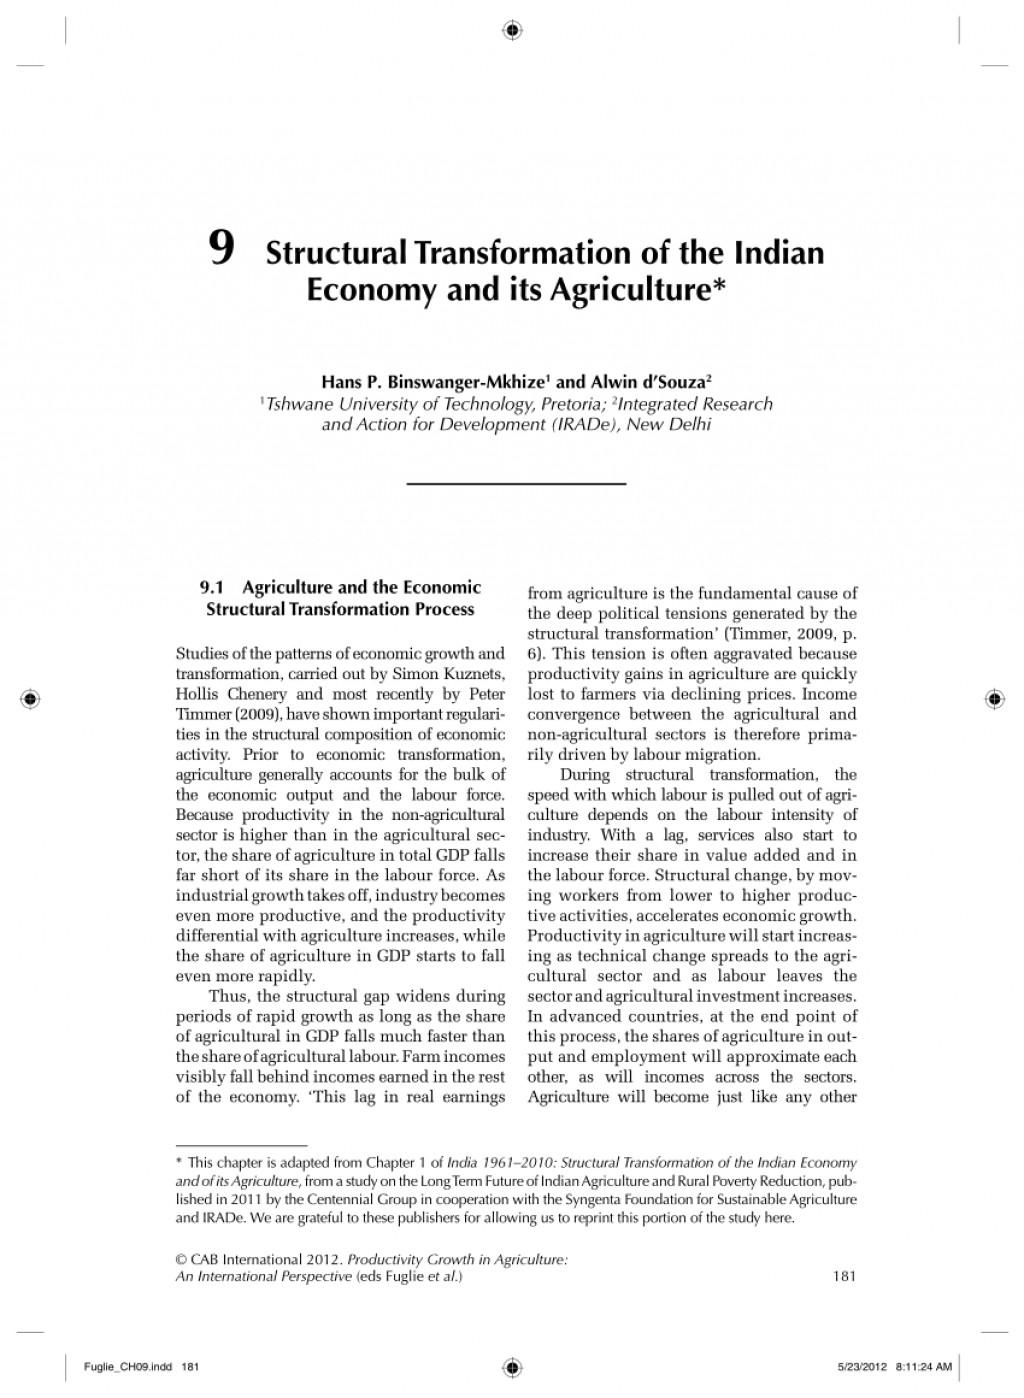 005 Largepreview Research Paper Indian Economic Breathtaking Growth Large